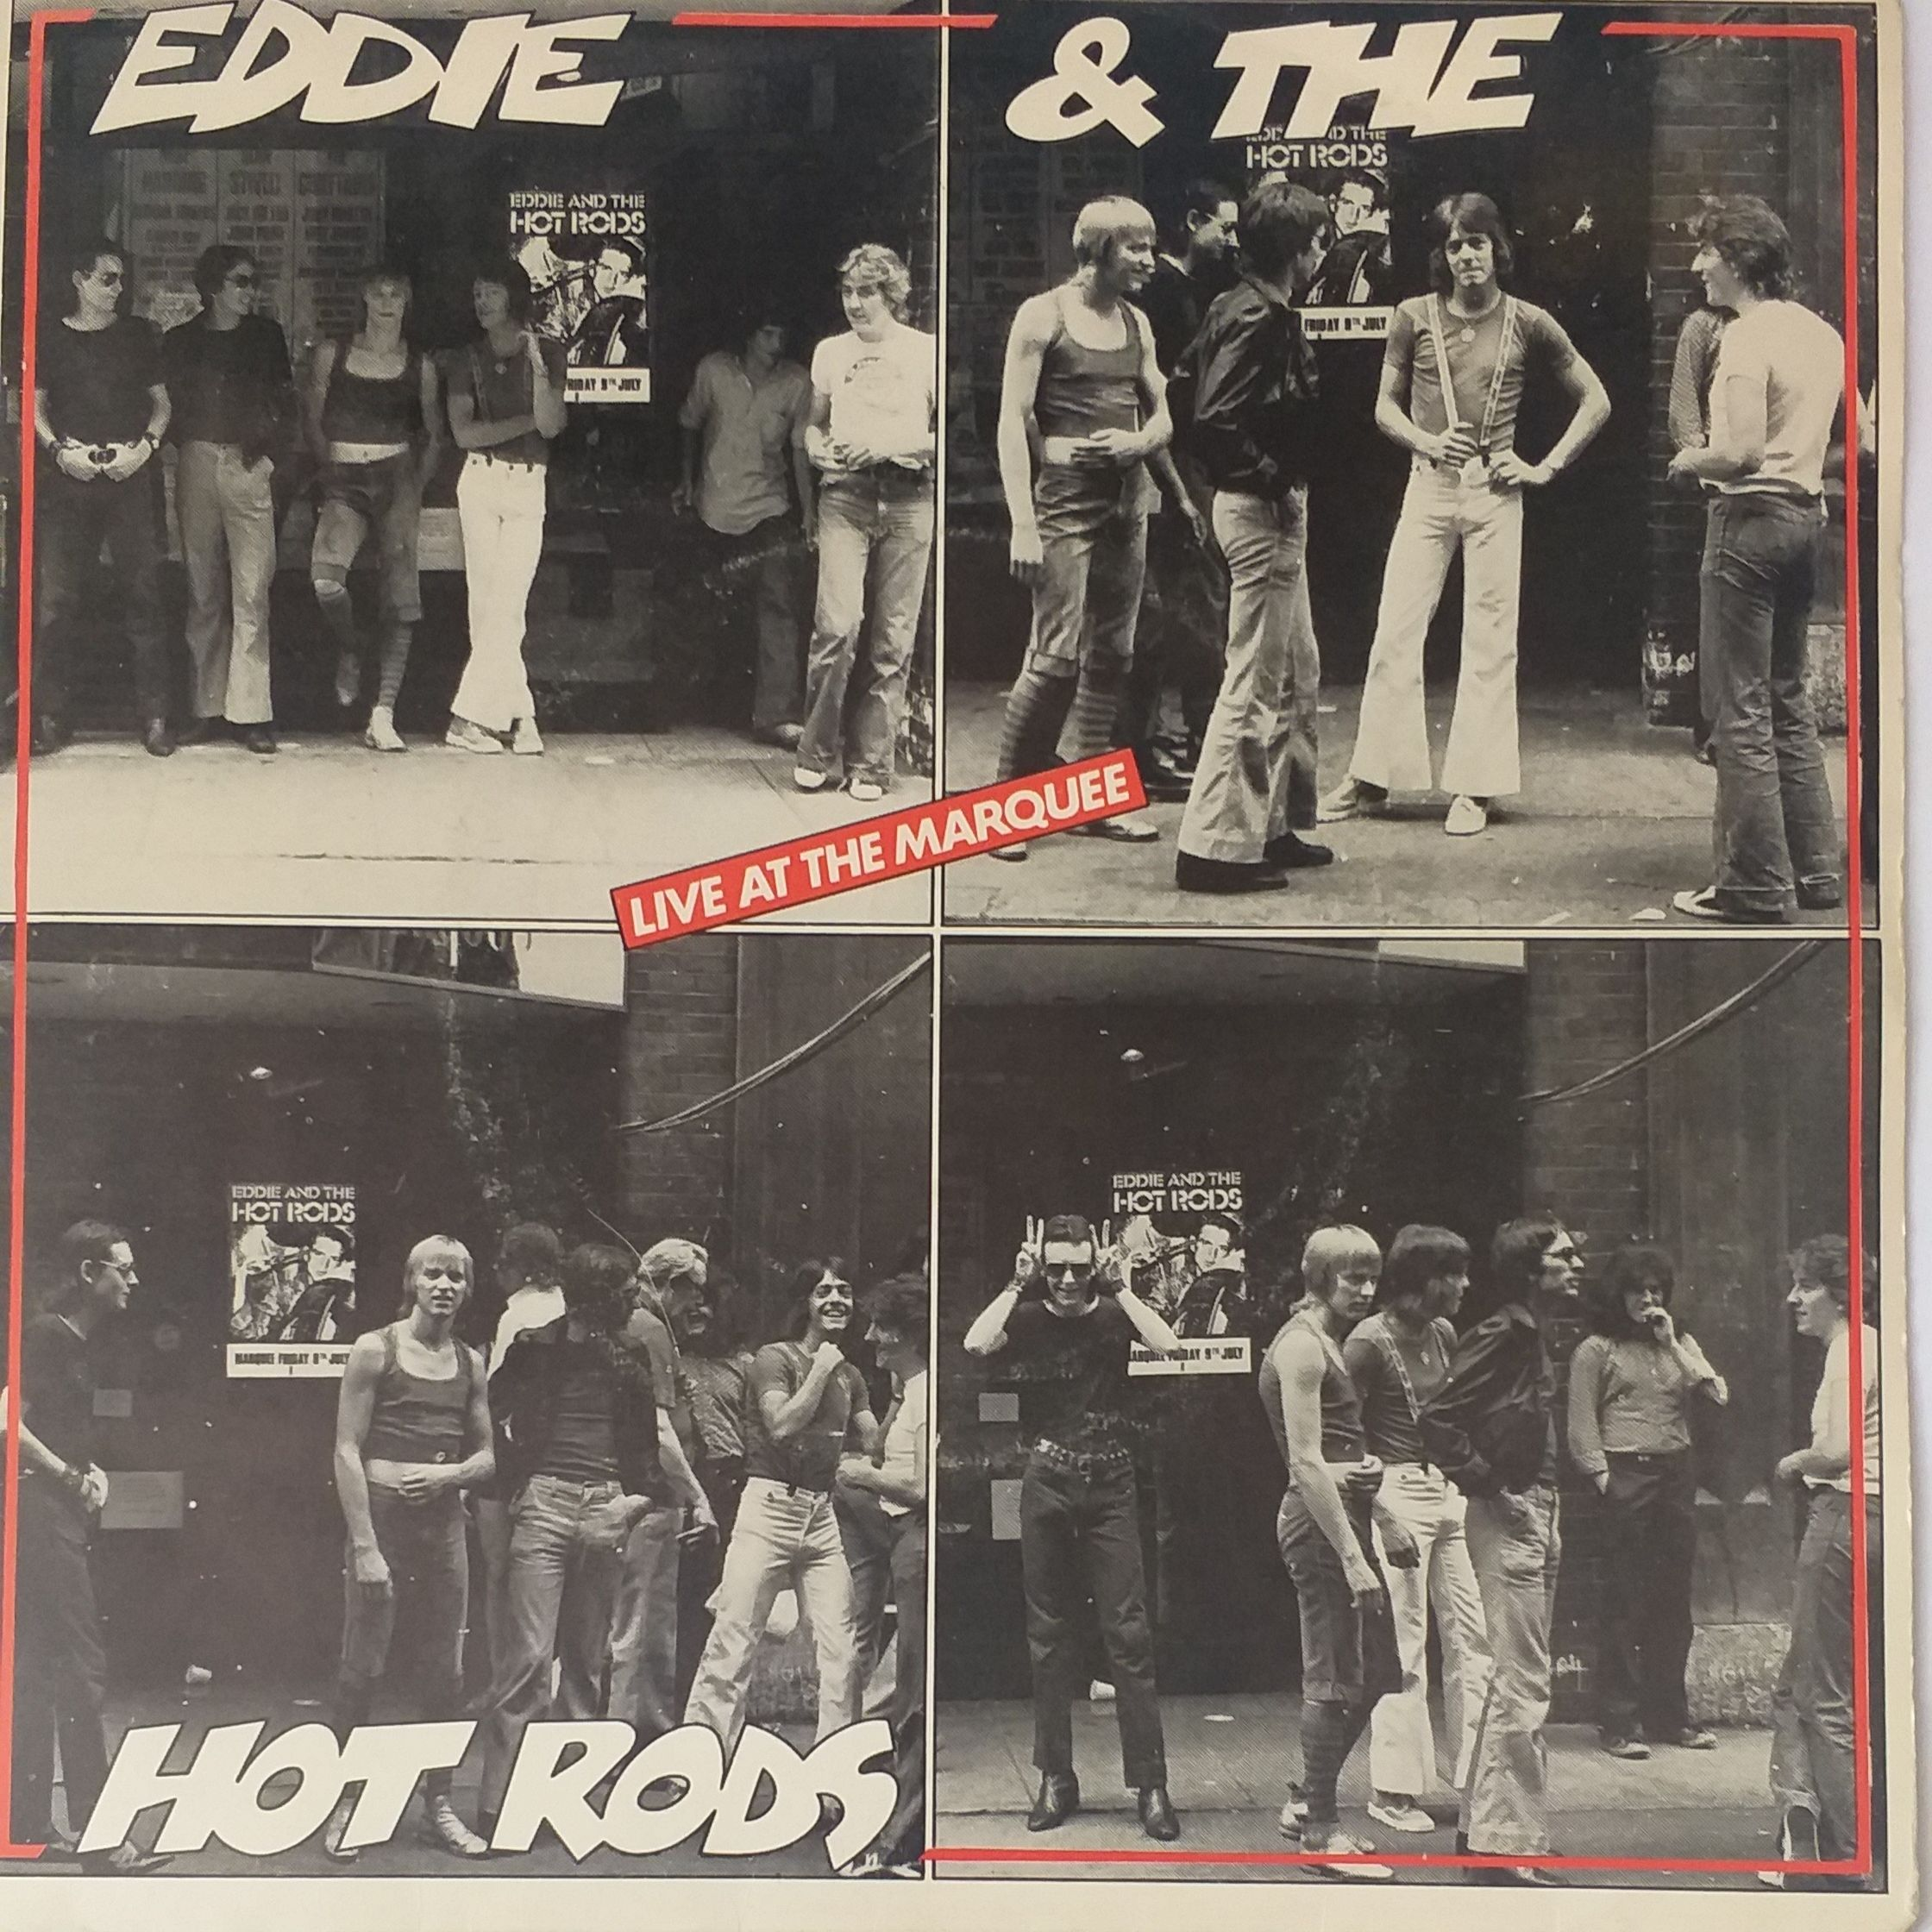 Eddie & hot rods Live at the marquee LP undefined